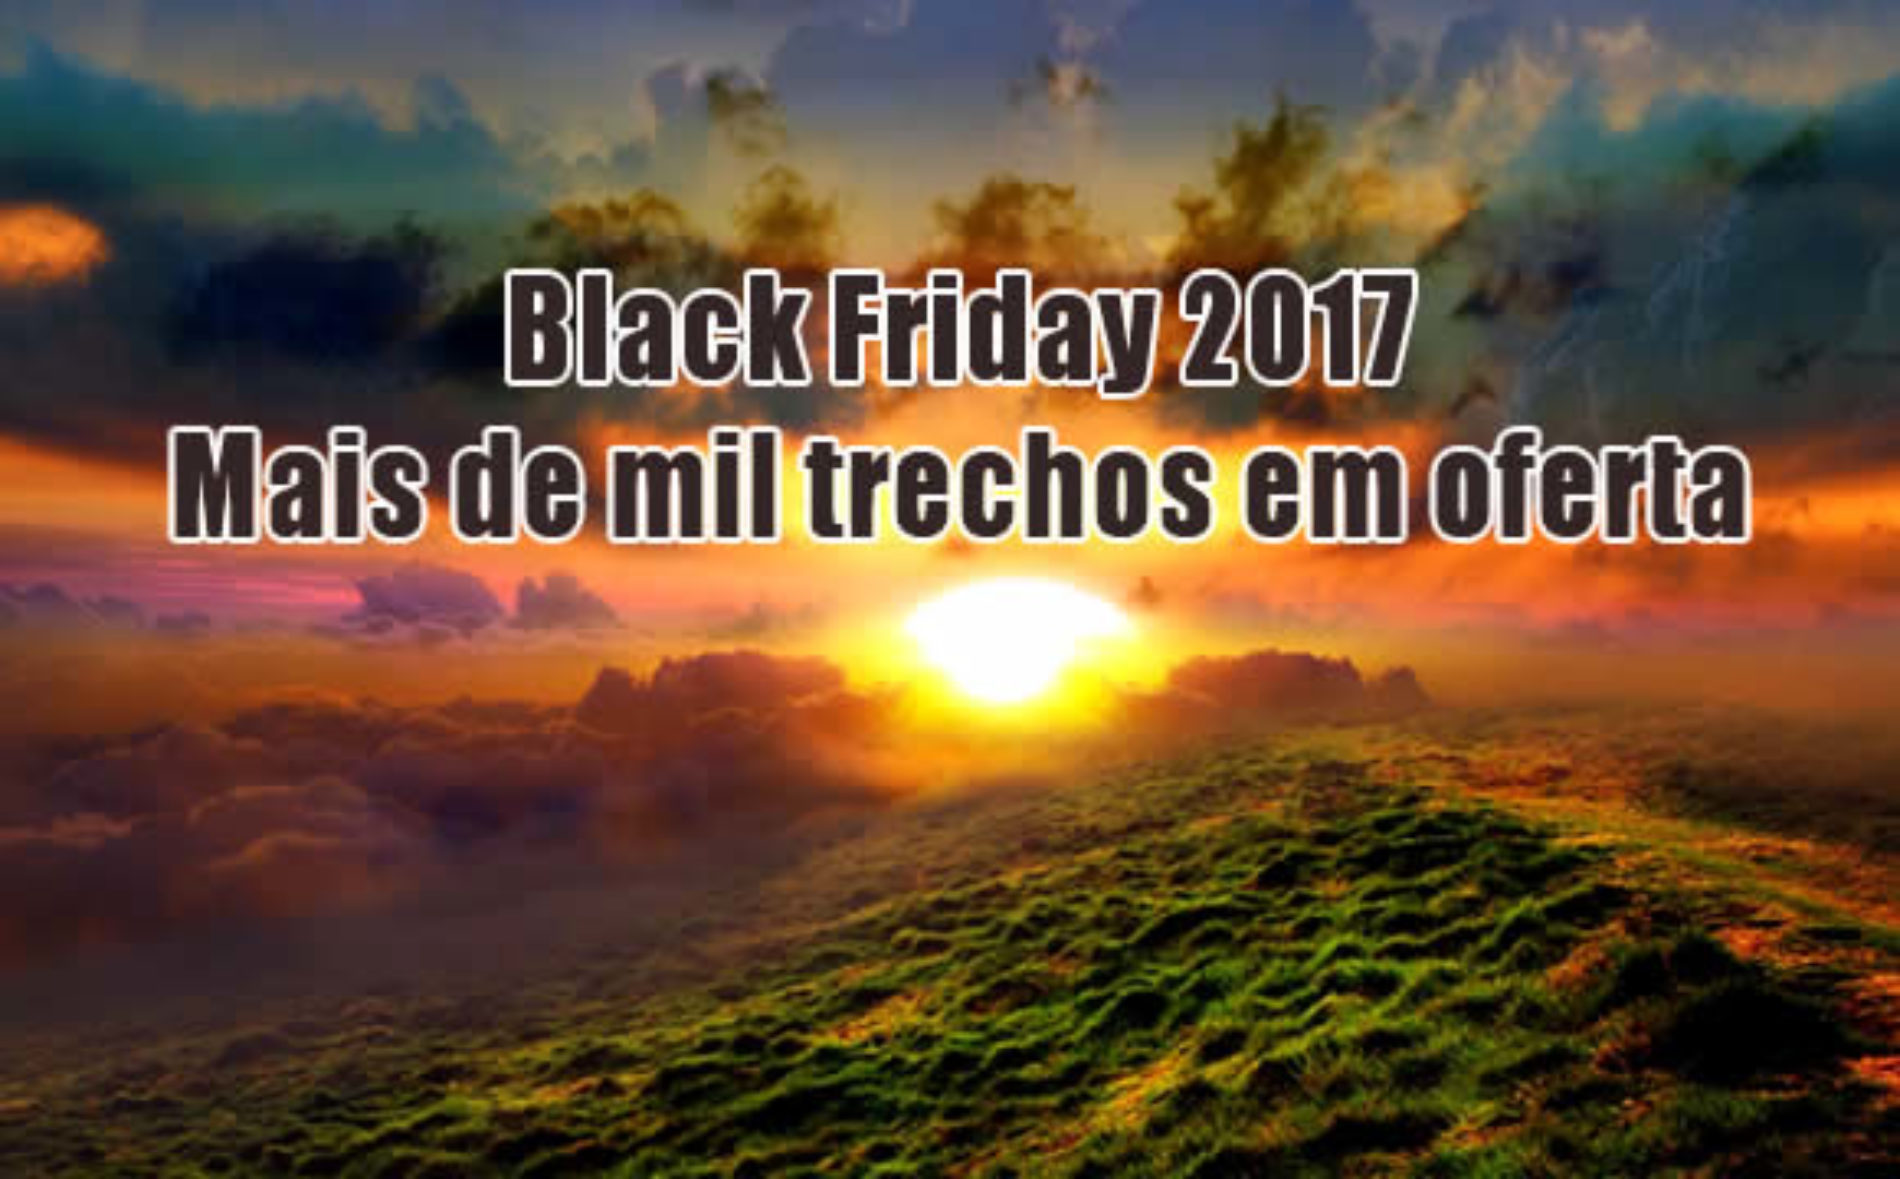 Black Friday 2017 De Voos Black Friday 2017 Passagens Latam Gol Azul E